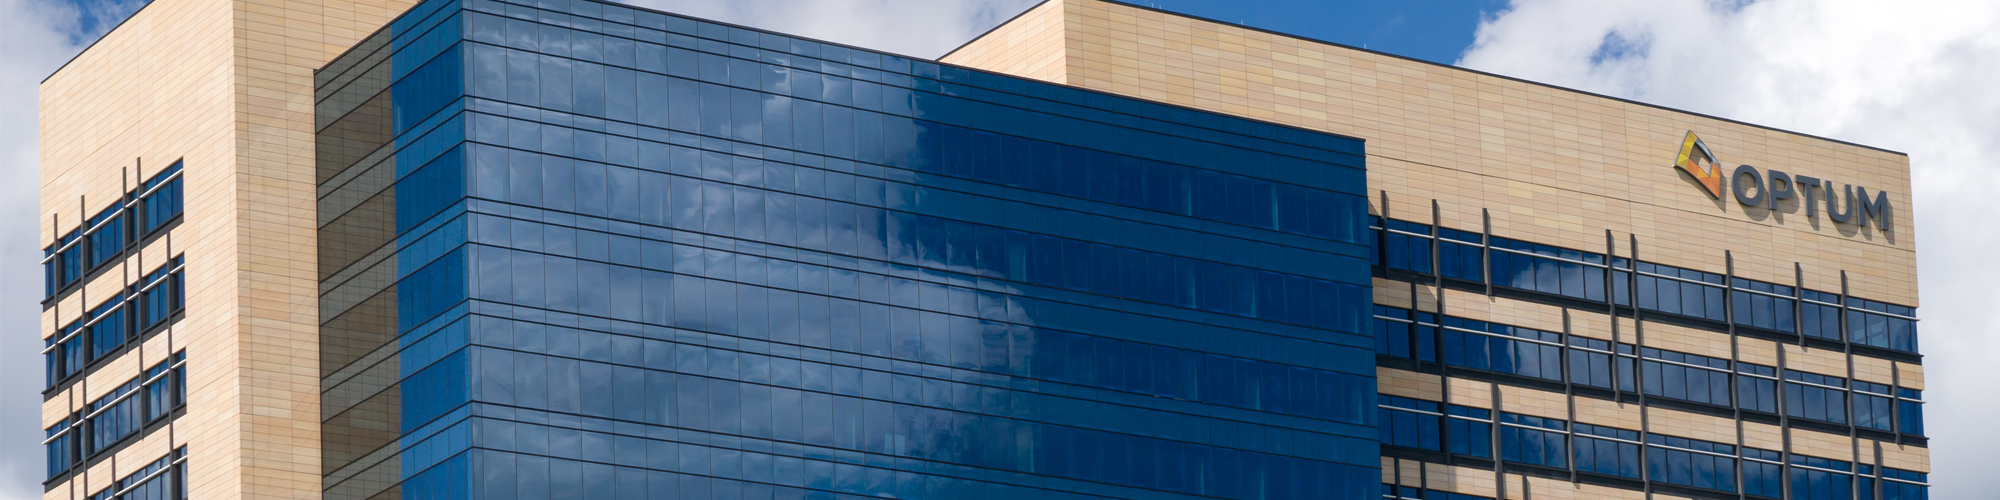 Chasing the Leader: Healthcare Vertical Integration follows Optum Model